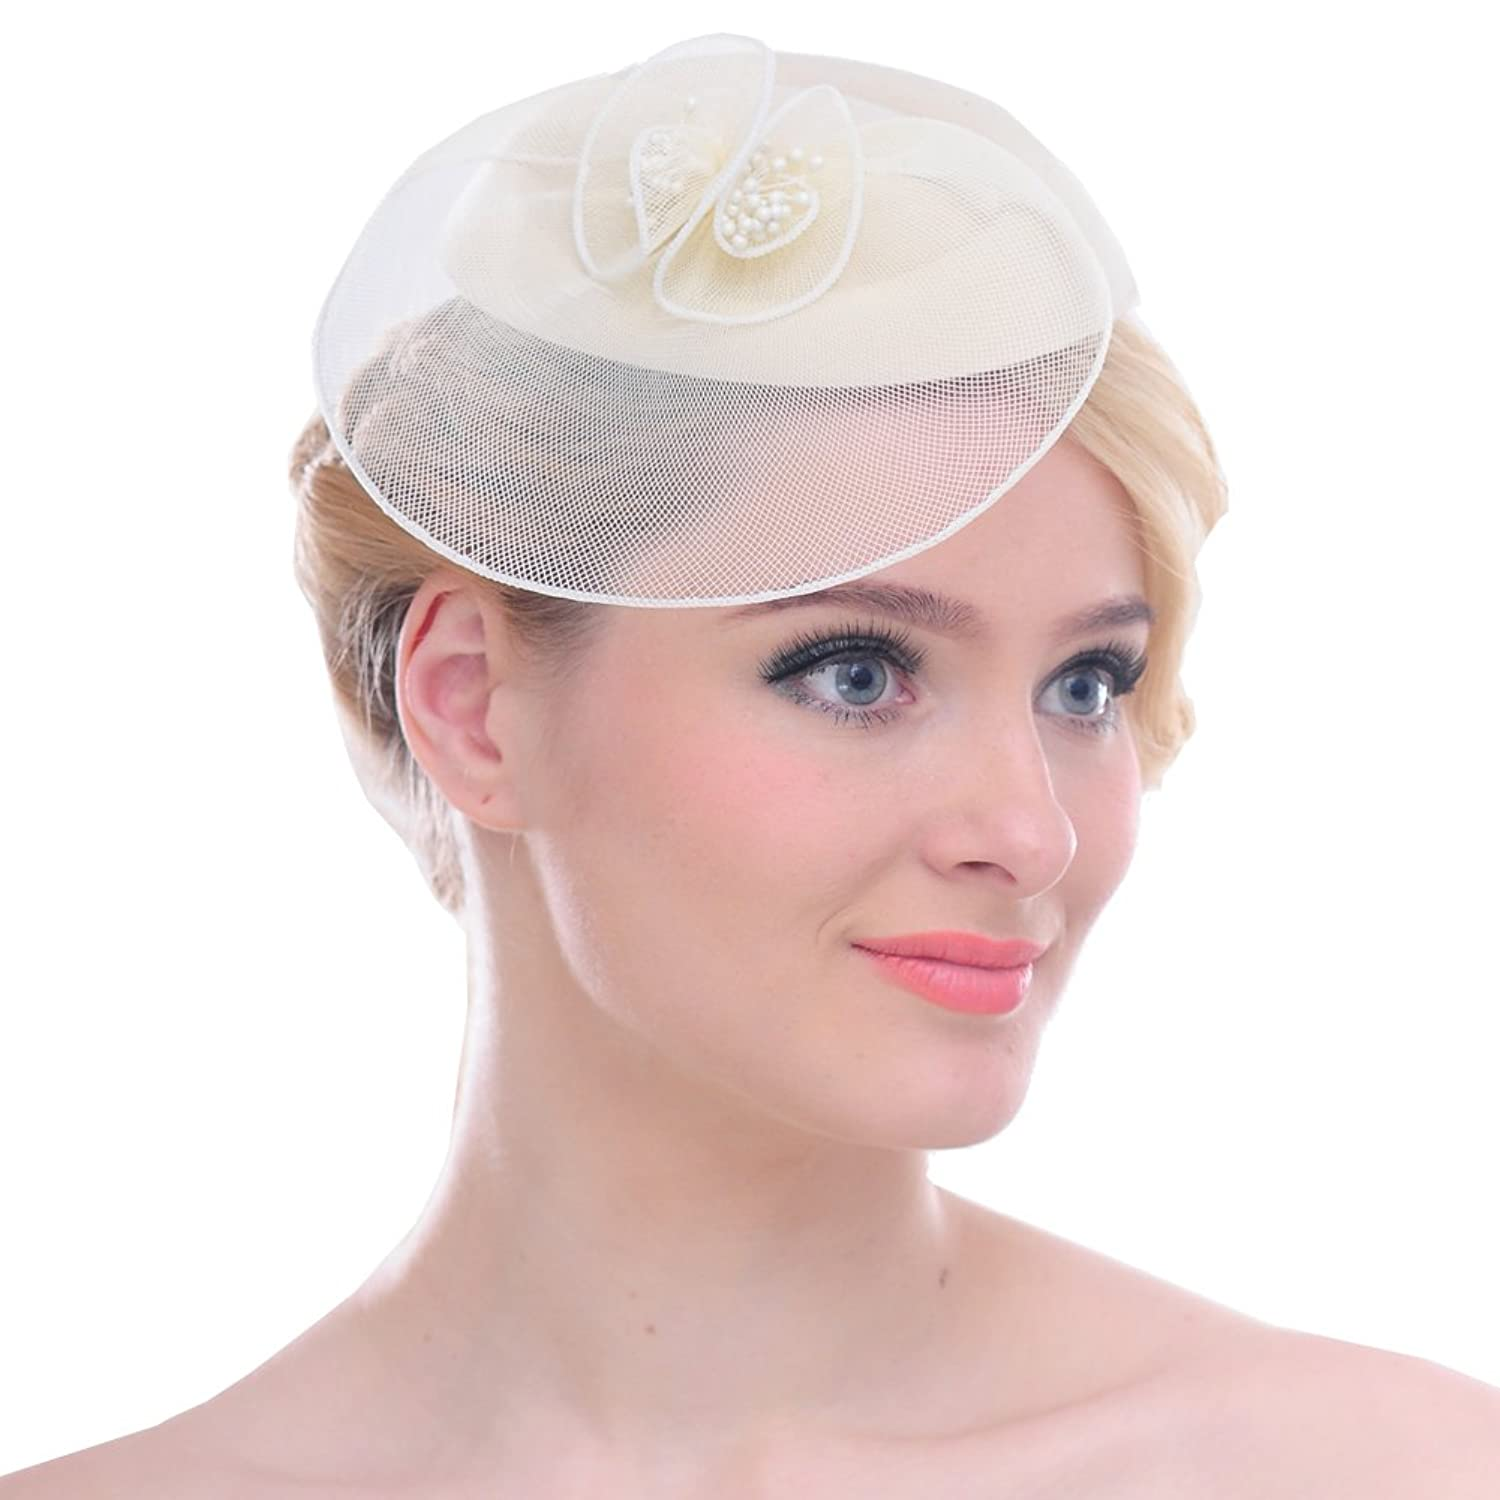 22e41482aa1c4 This elegant vintage fascinator hat hair clip is a gorgeous gift for  grandmother